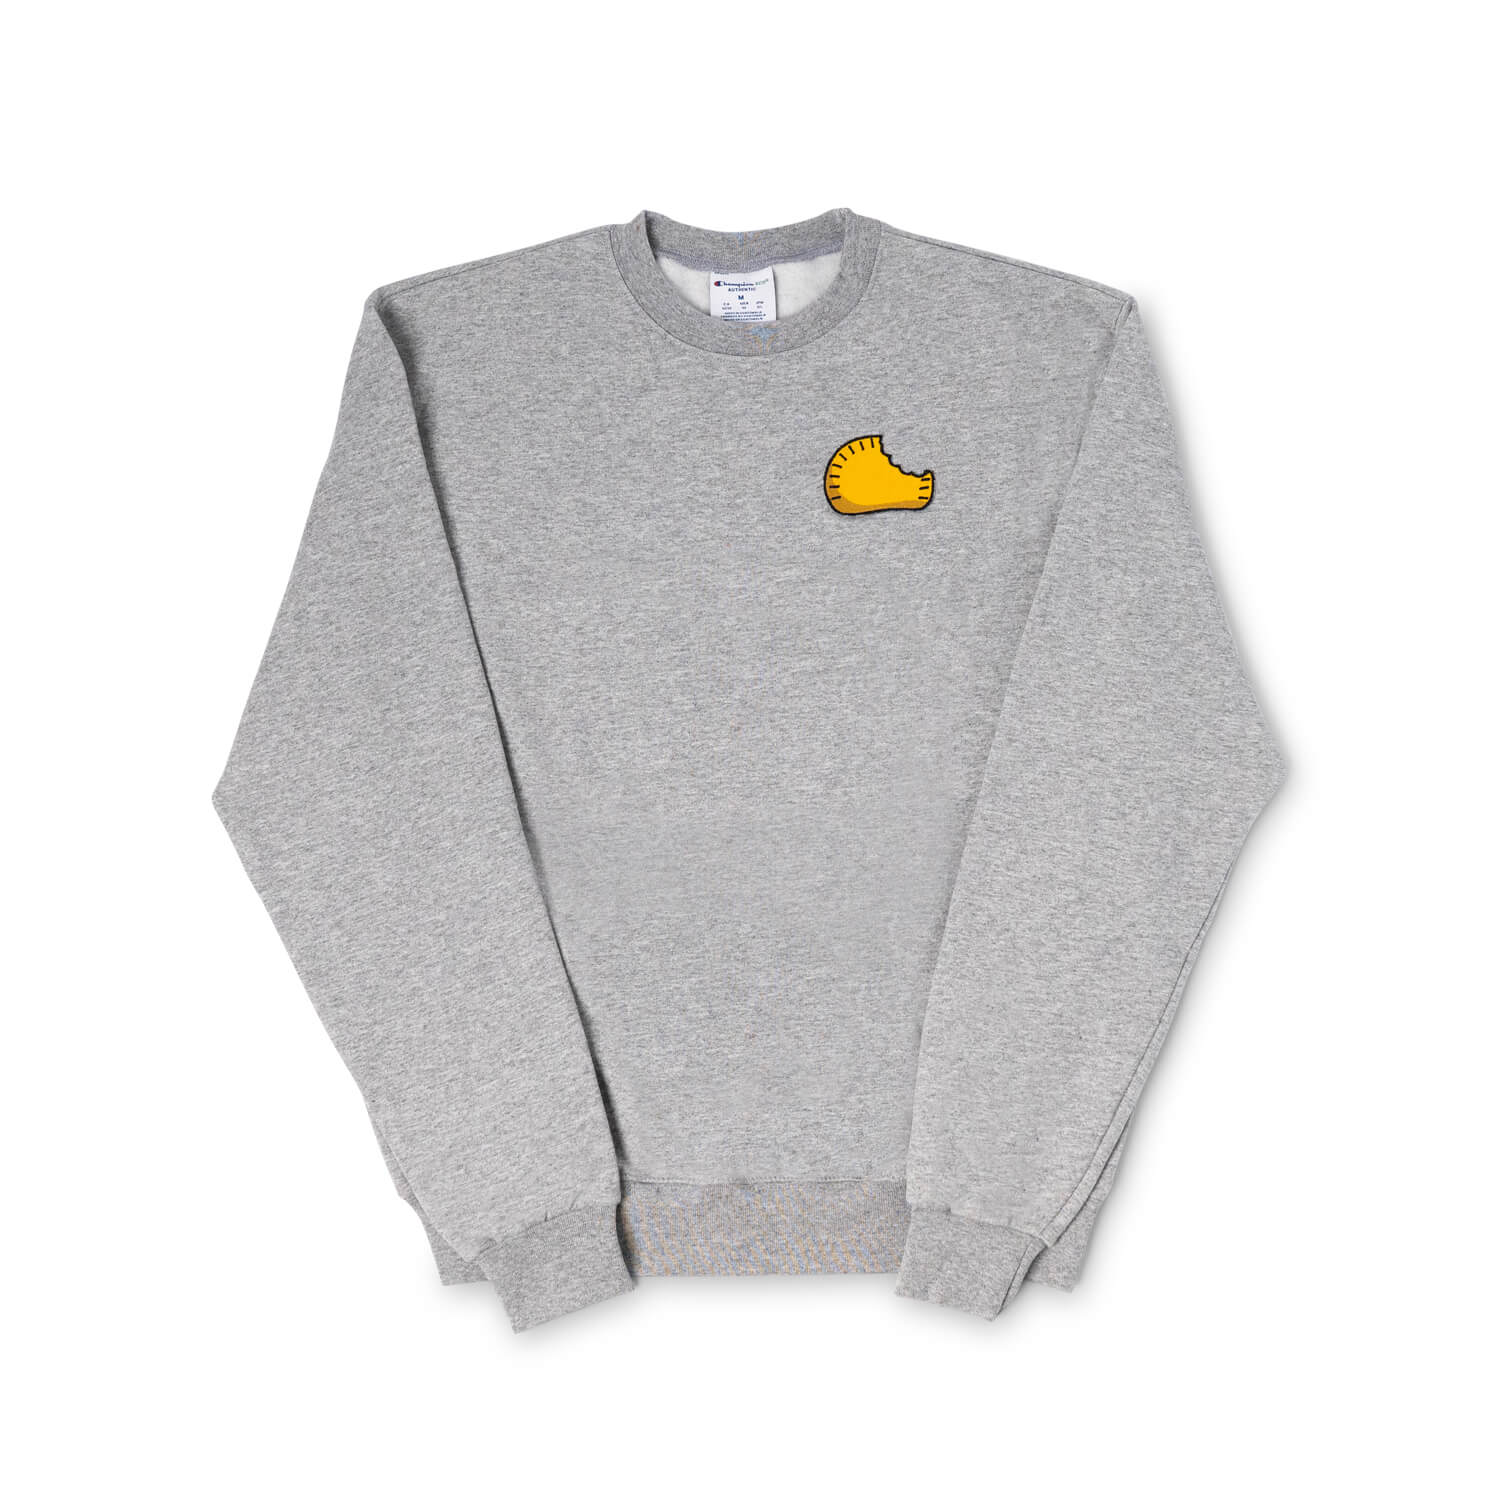 Lloydie's Patty Patch Crewneck Sweatshirt (Grey)